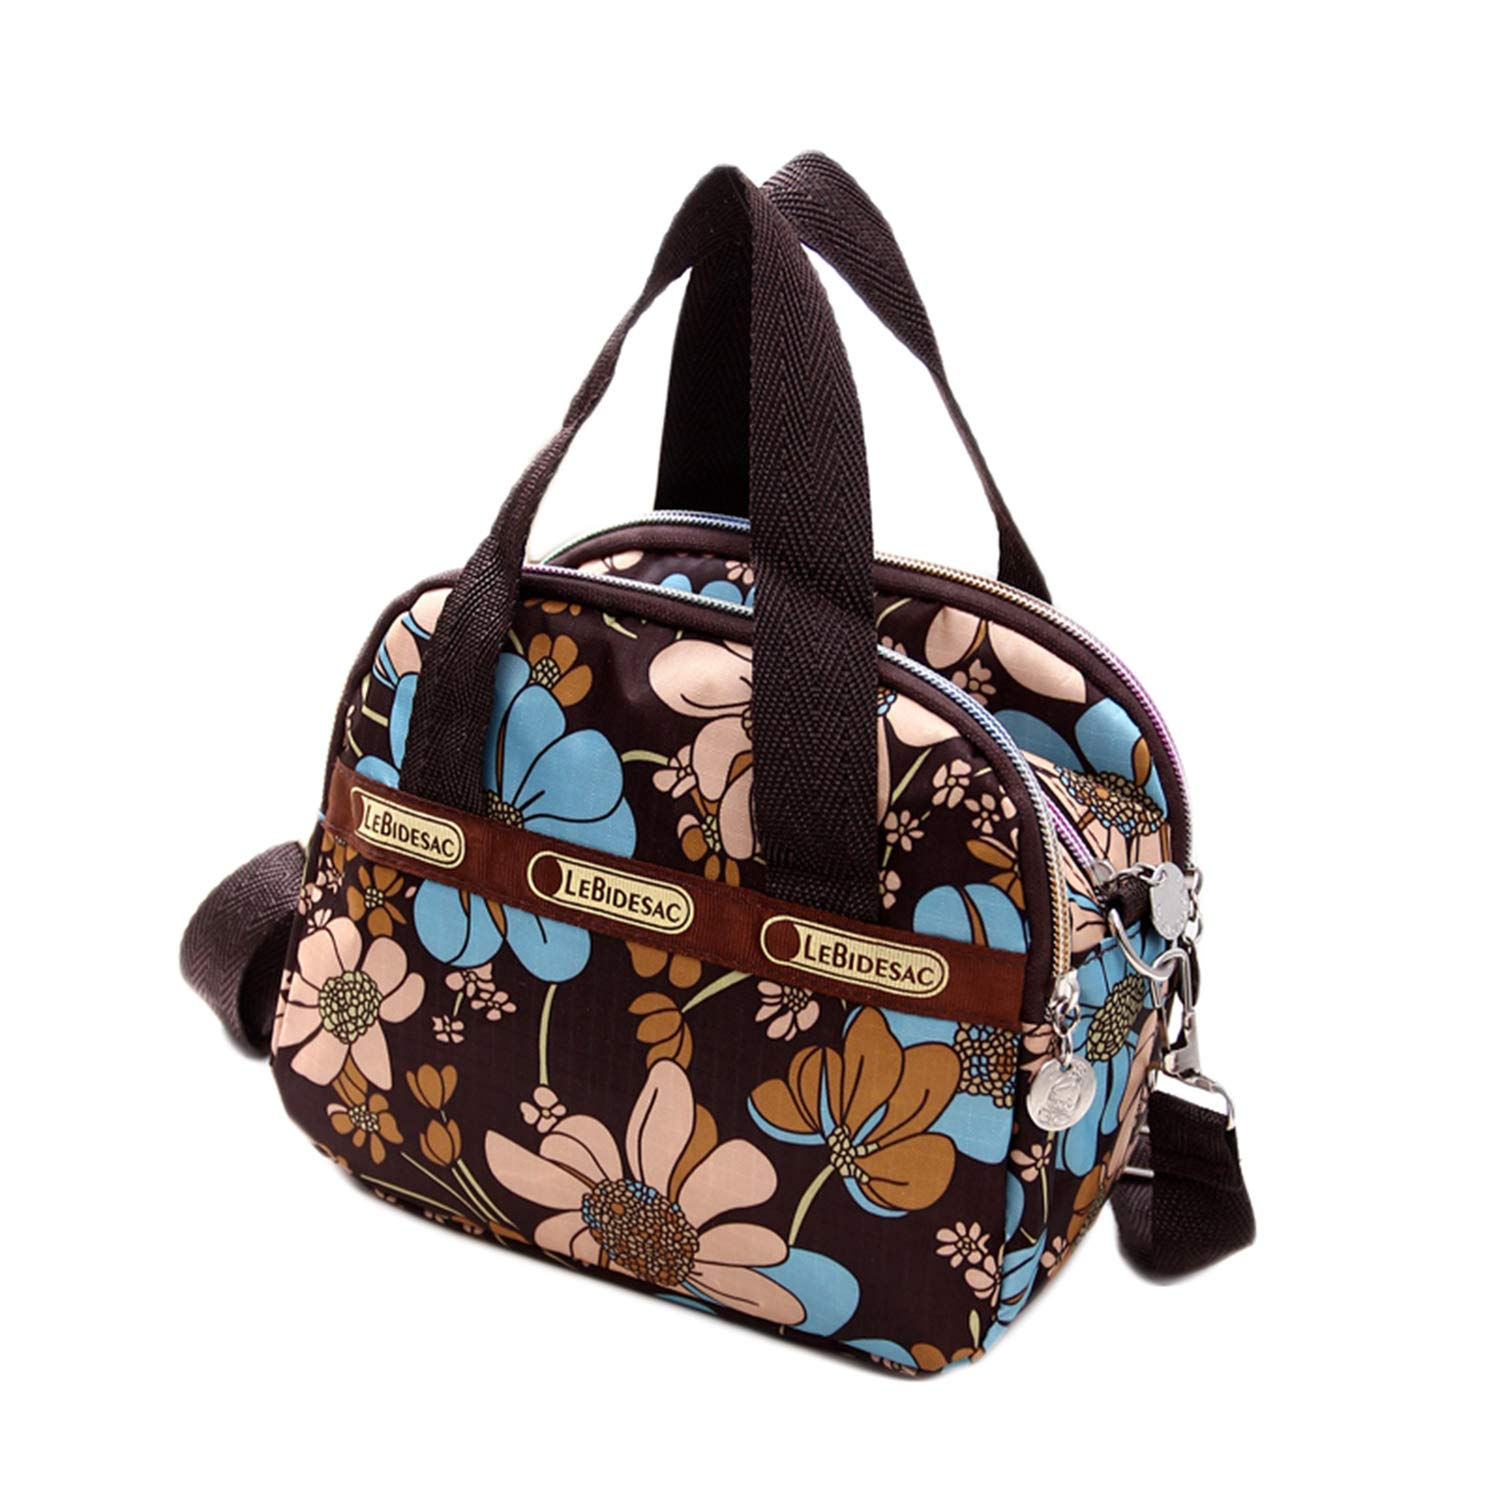 Women's Mini Nylon Floral Top Handle Tote Handbags Water Resistant Multi Pocket Zipper Shoulder Bag Crossbody Bags by Lichene (Image #1)